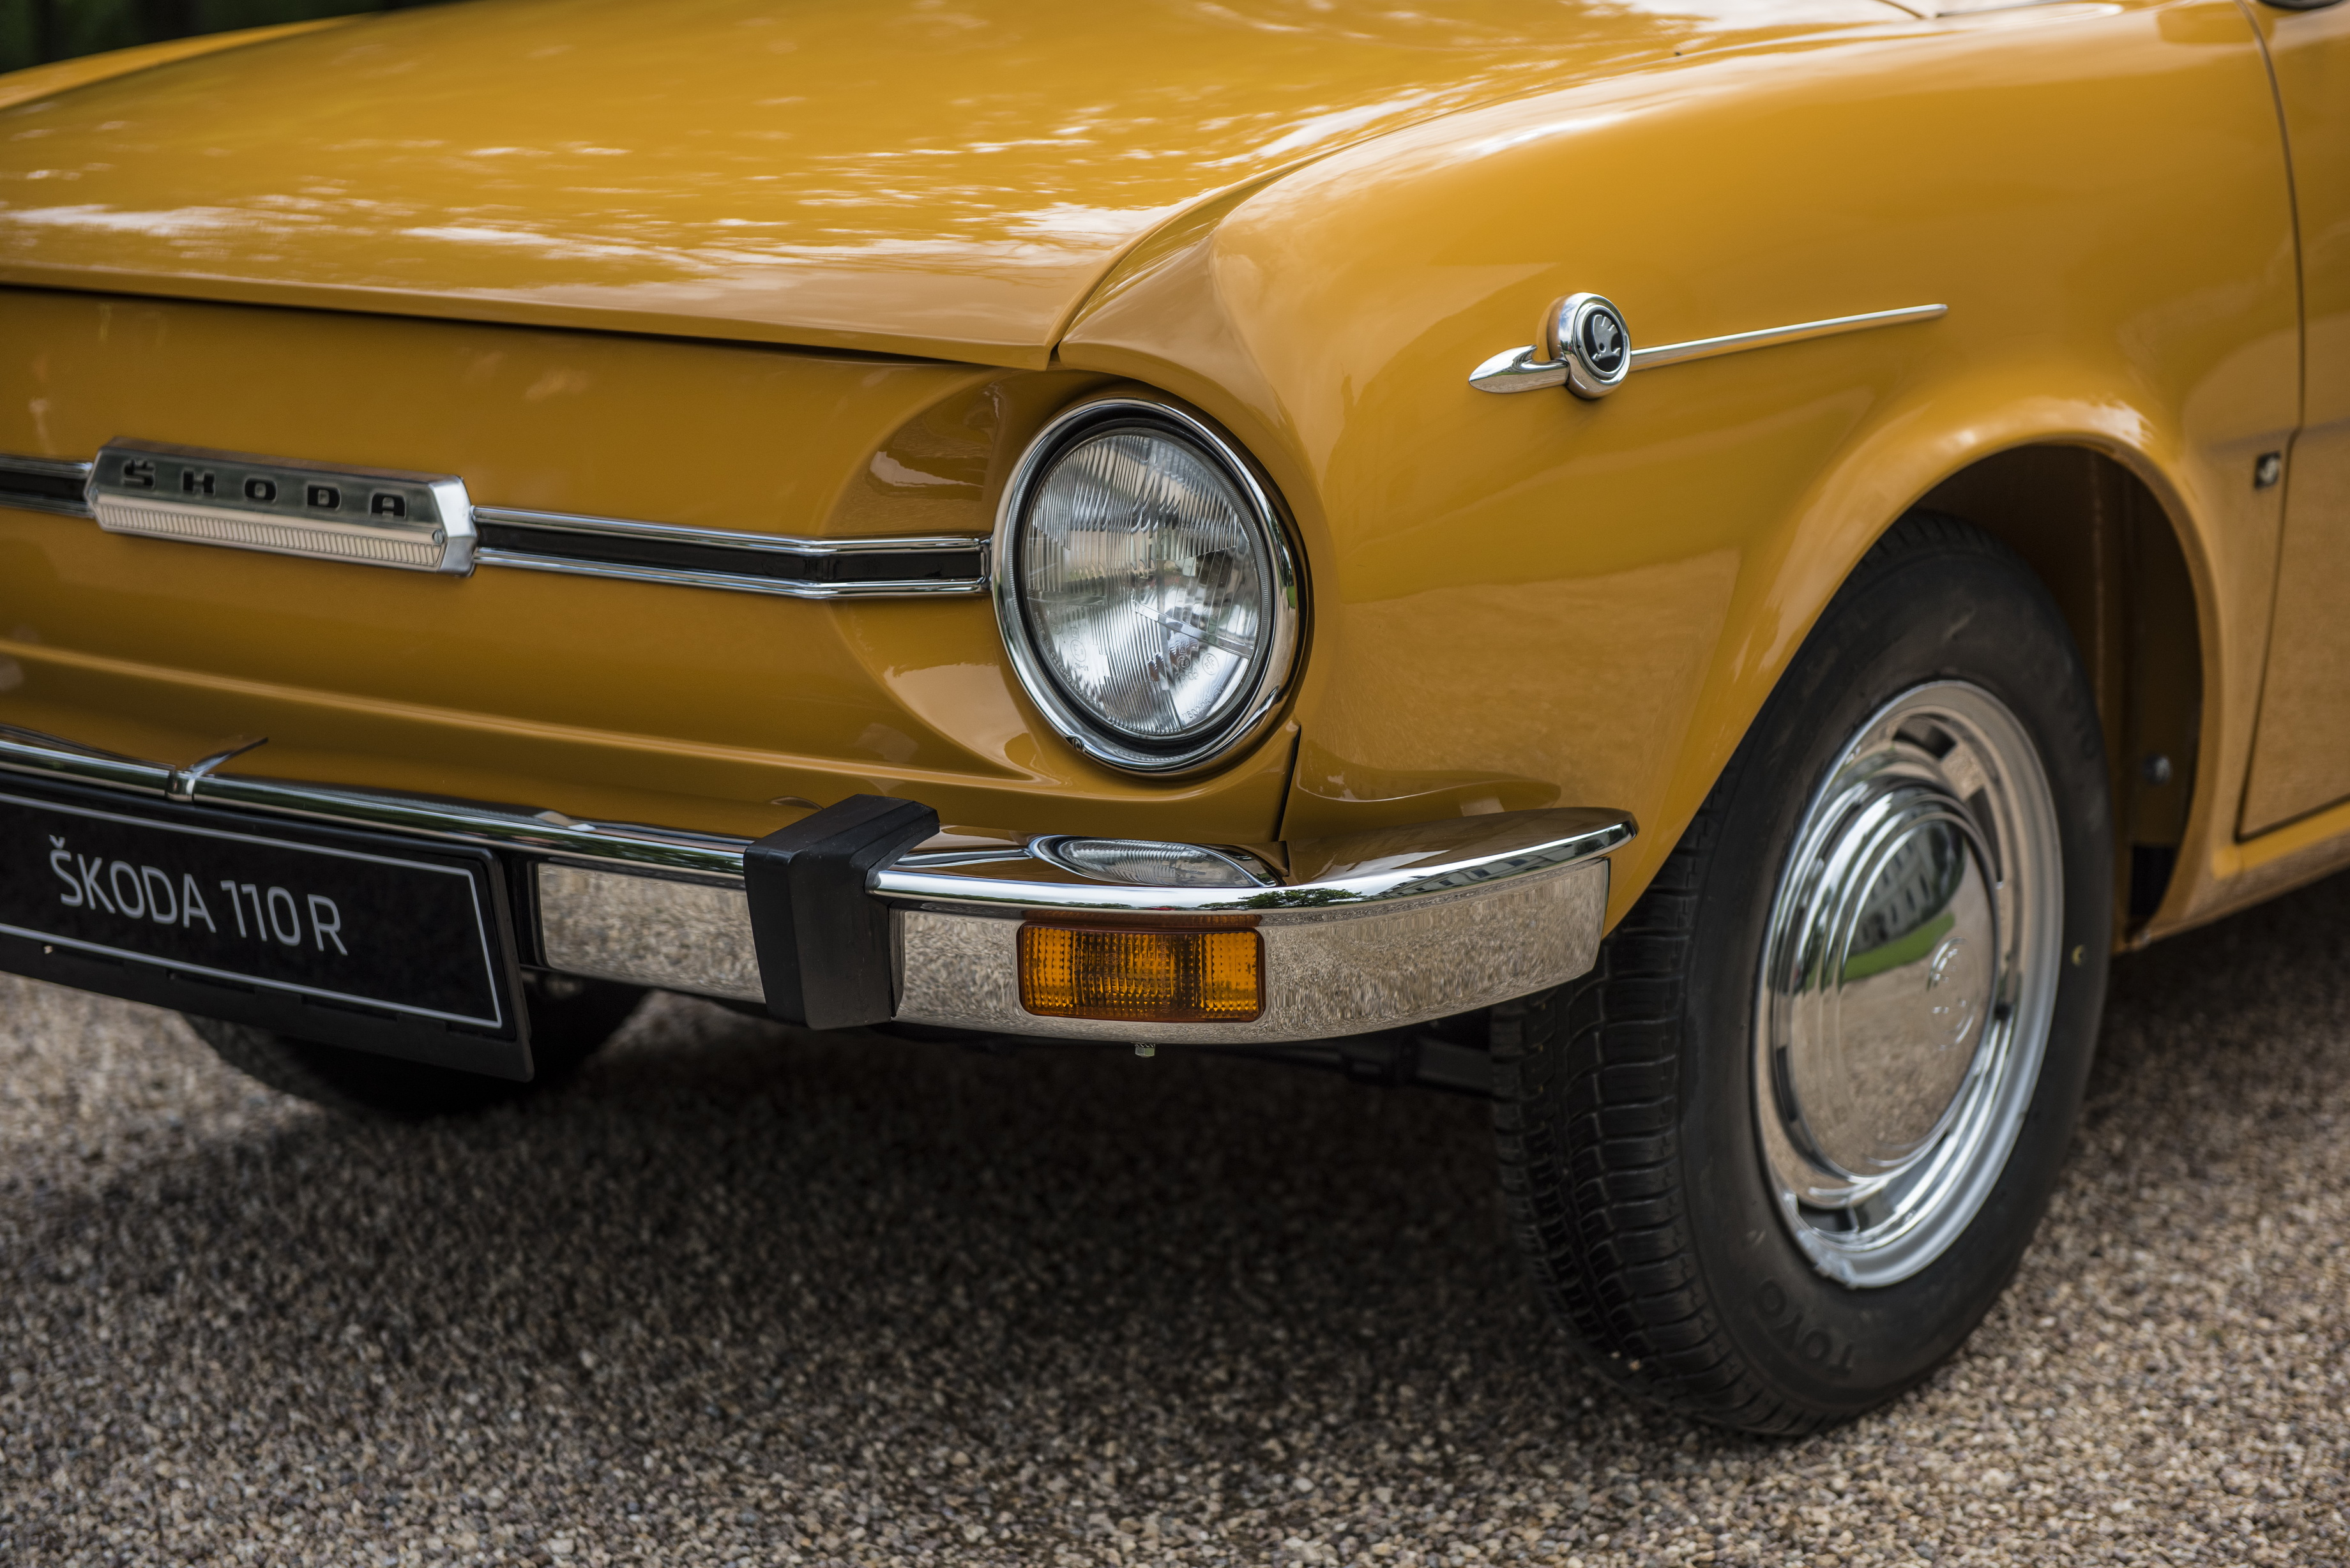 50 years of the 110 R: Half a century ago, SKODA presented its legendary sports coupé - Image 3